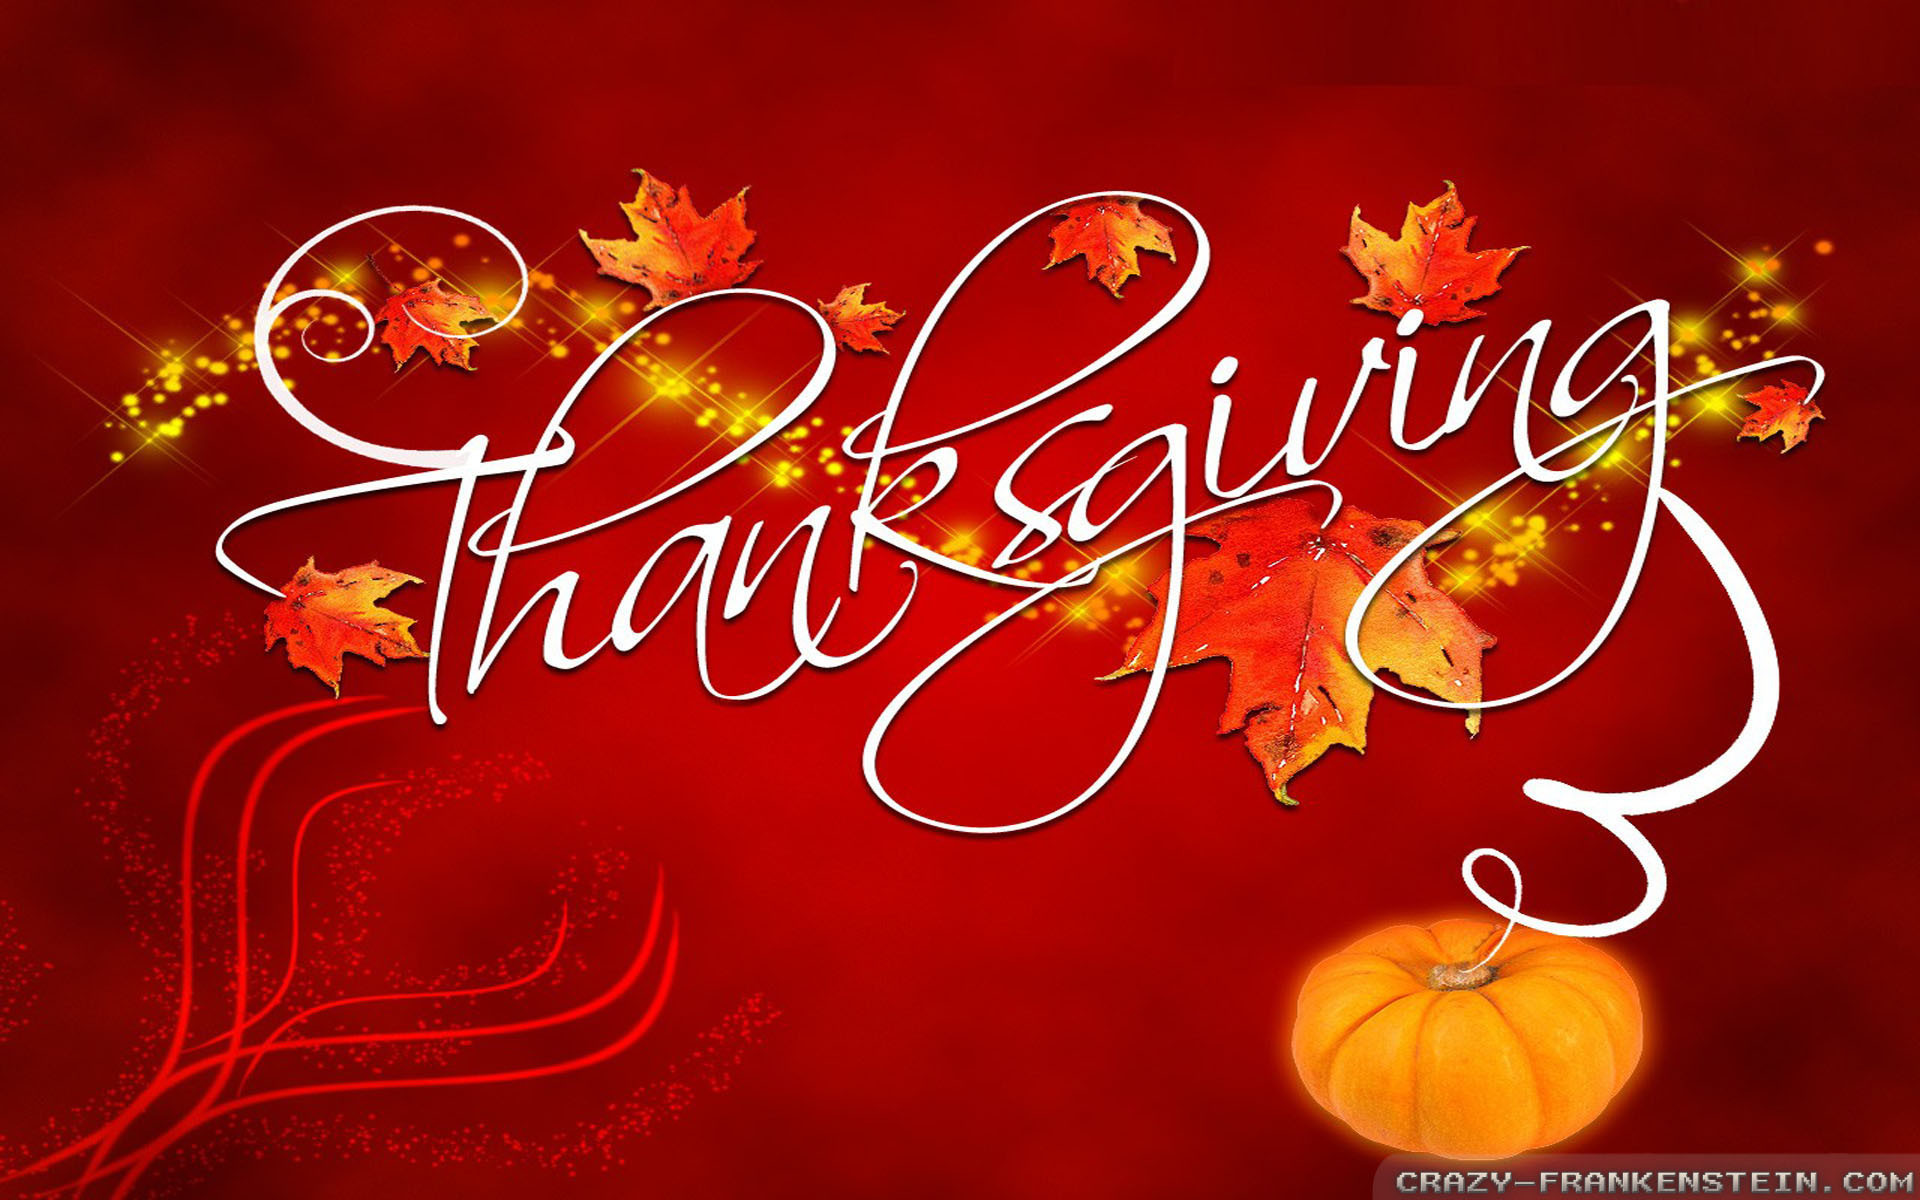 1920x1200 Awesome Thanksgiving Holiday Pic in HD Widescreen